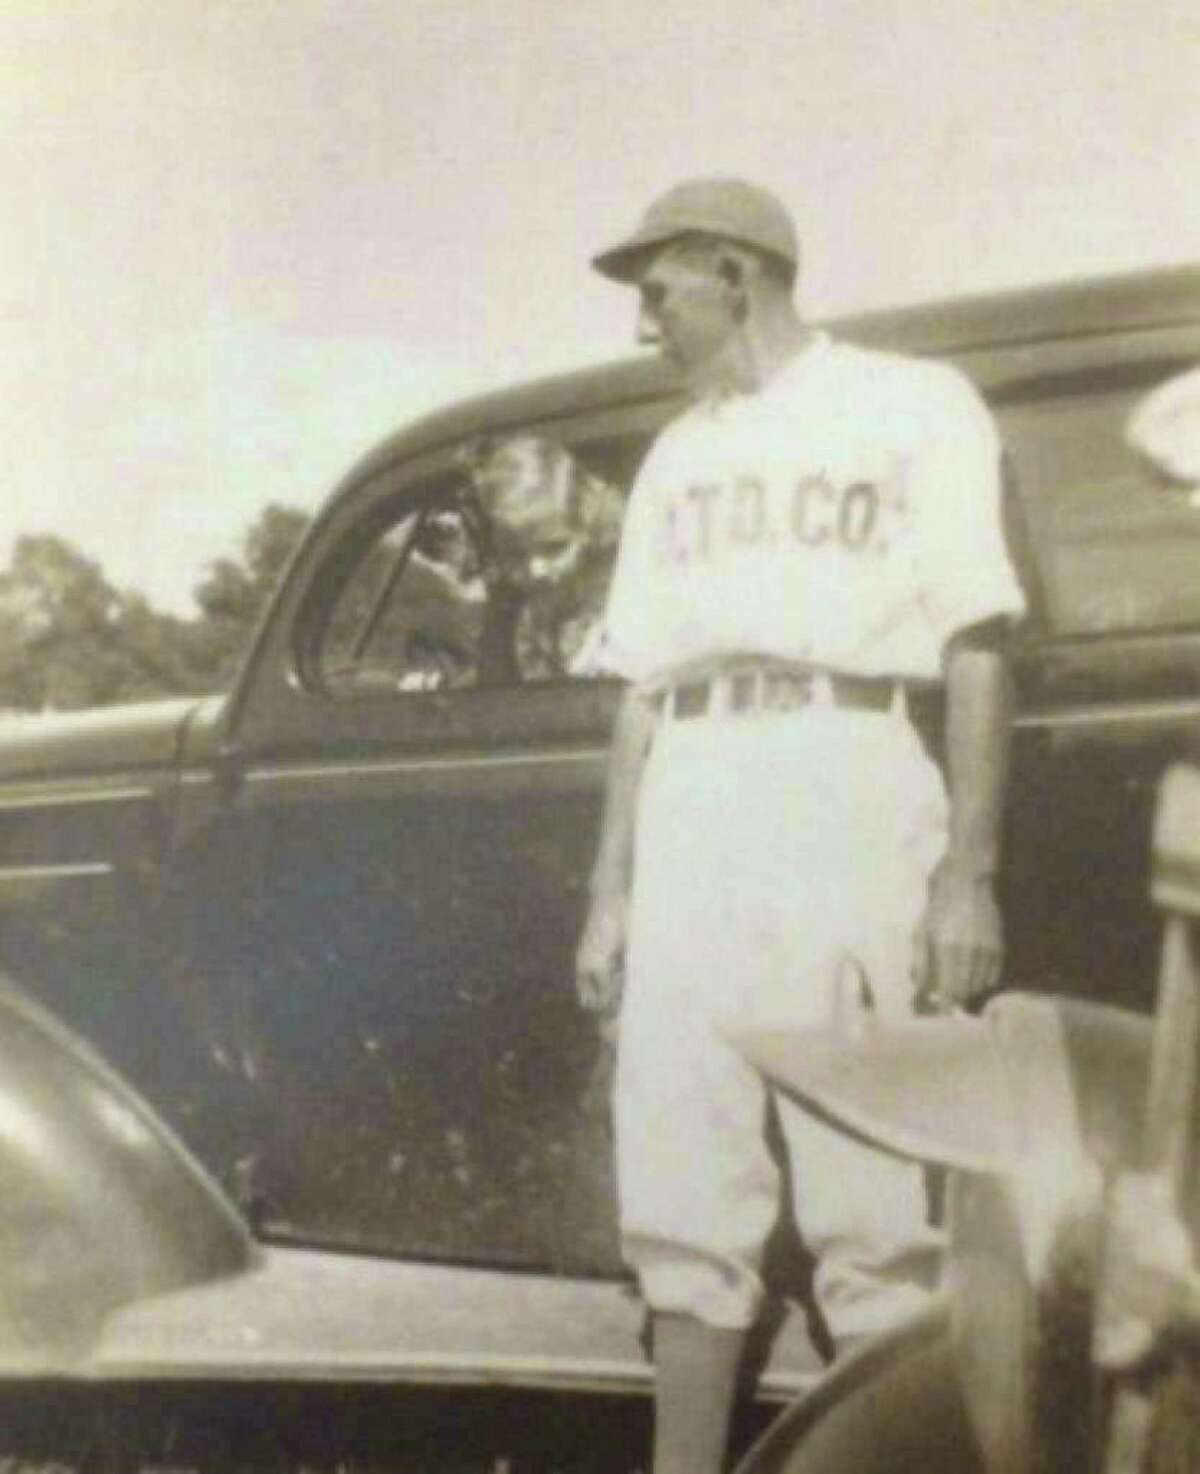 Dan M. Houlihan played baseball for the South Texas Development Company in the Conroe oilfield.